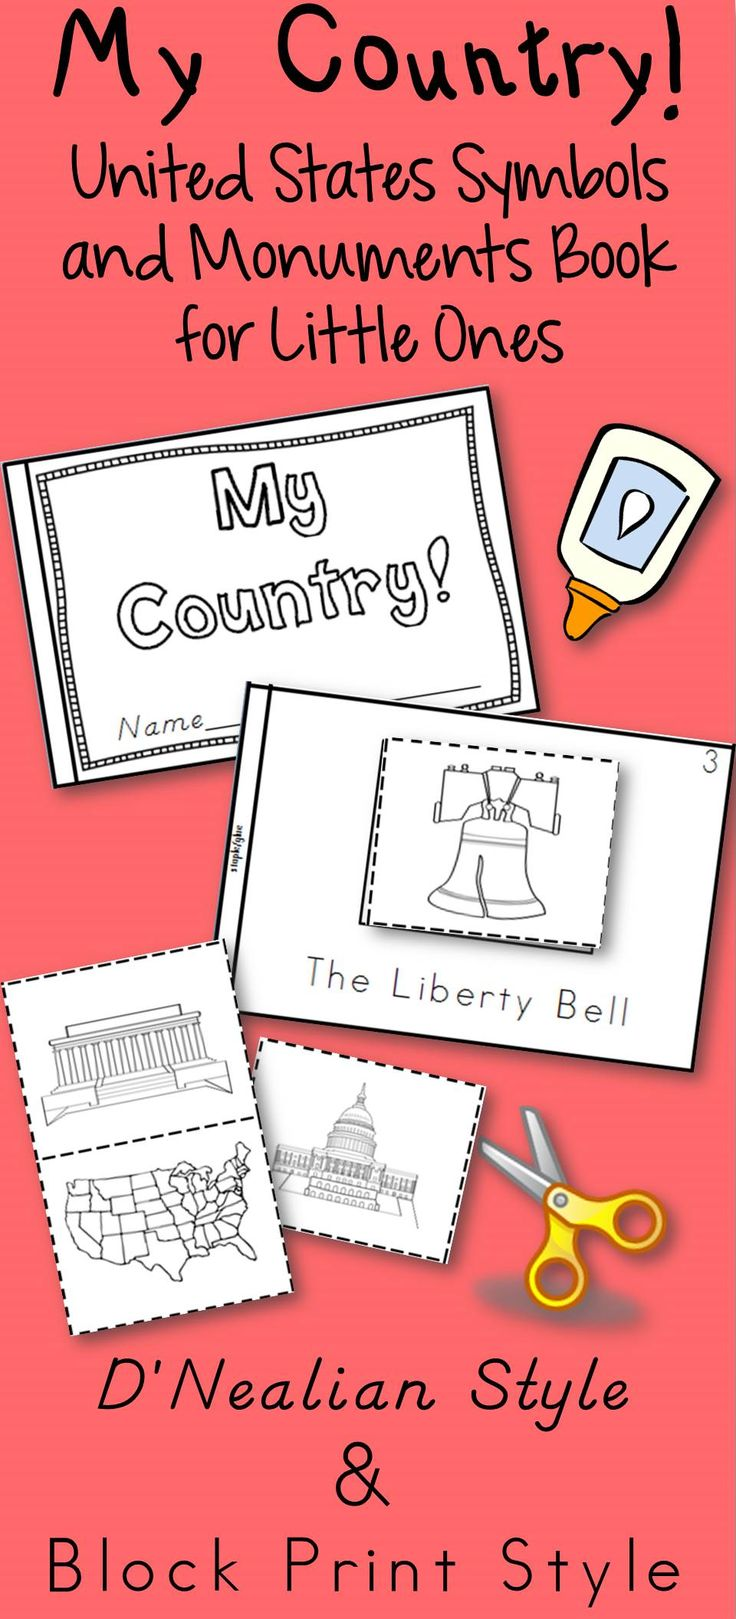 US symbols and monuments book.  Click pin to go to page that has product in both block print and d'nealian available. United States history, map, liberty bell, Mt. Rushmore, Eagle, White House, Statue of Liberty, Capitol building, Washington Monument, flag, .